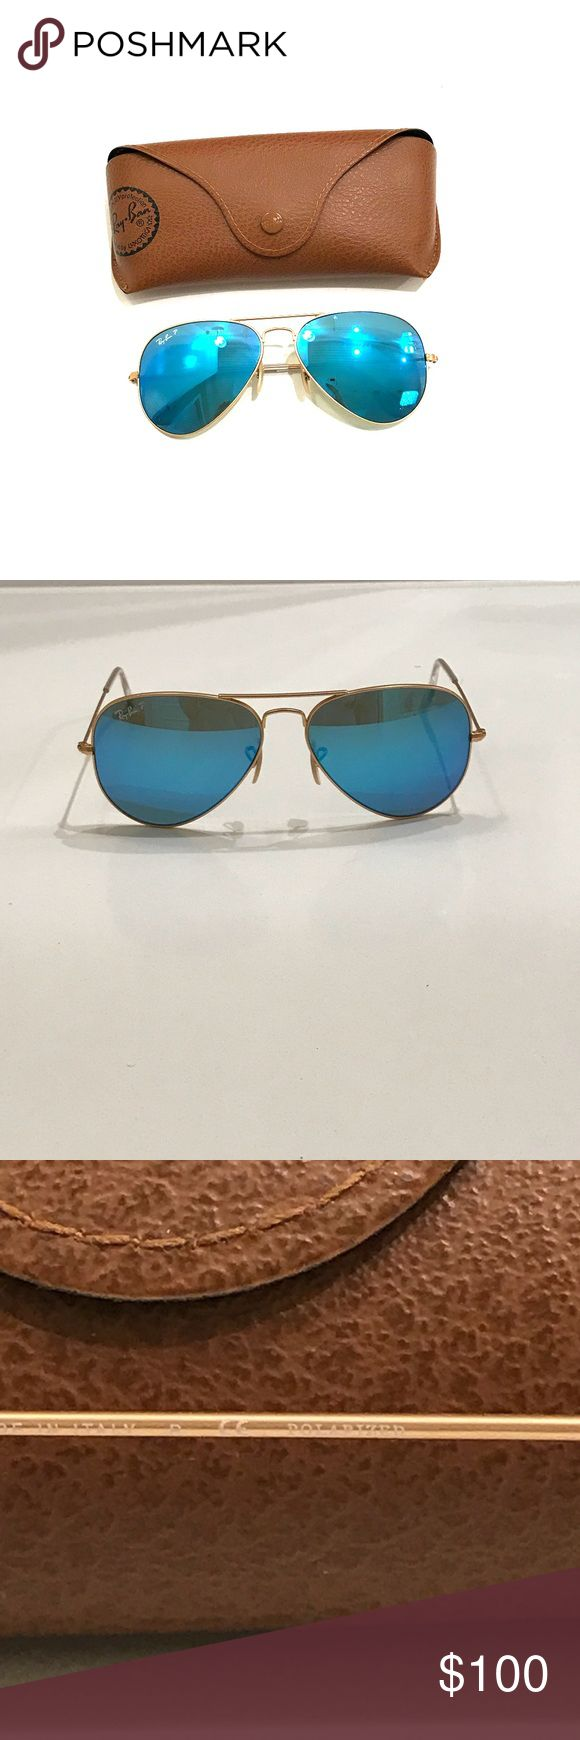 Ray Ban Polarized Blue Mirrored Aviators Polarized blue mirrored aviators by Ray Ban. Only worn a handful of times with. No scratches or imperfections. Ray-Ban Accessories Sunglasses